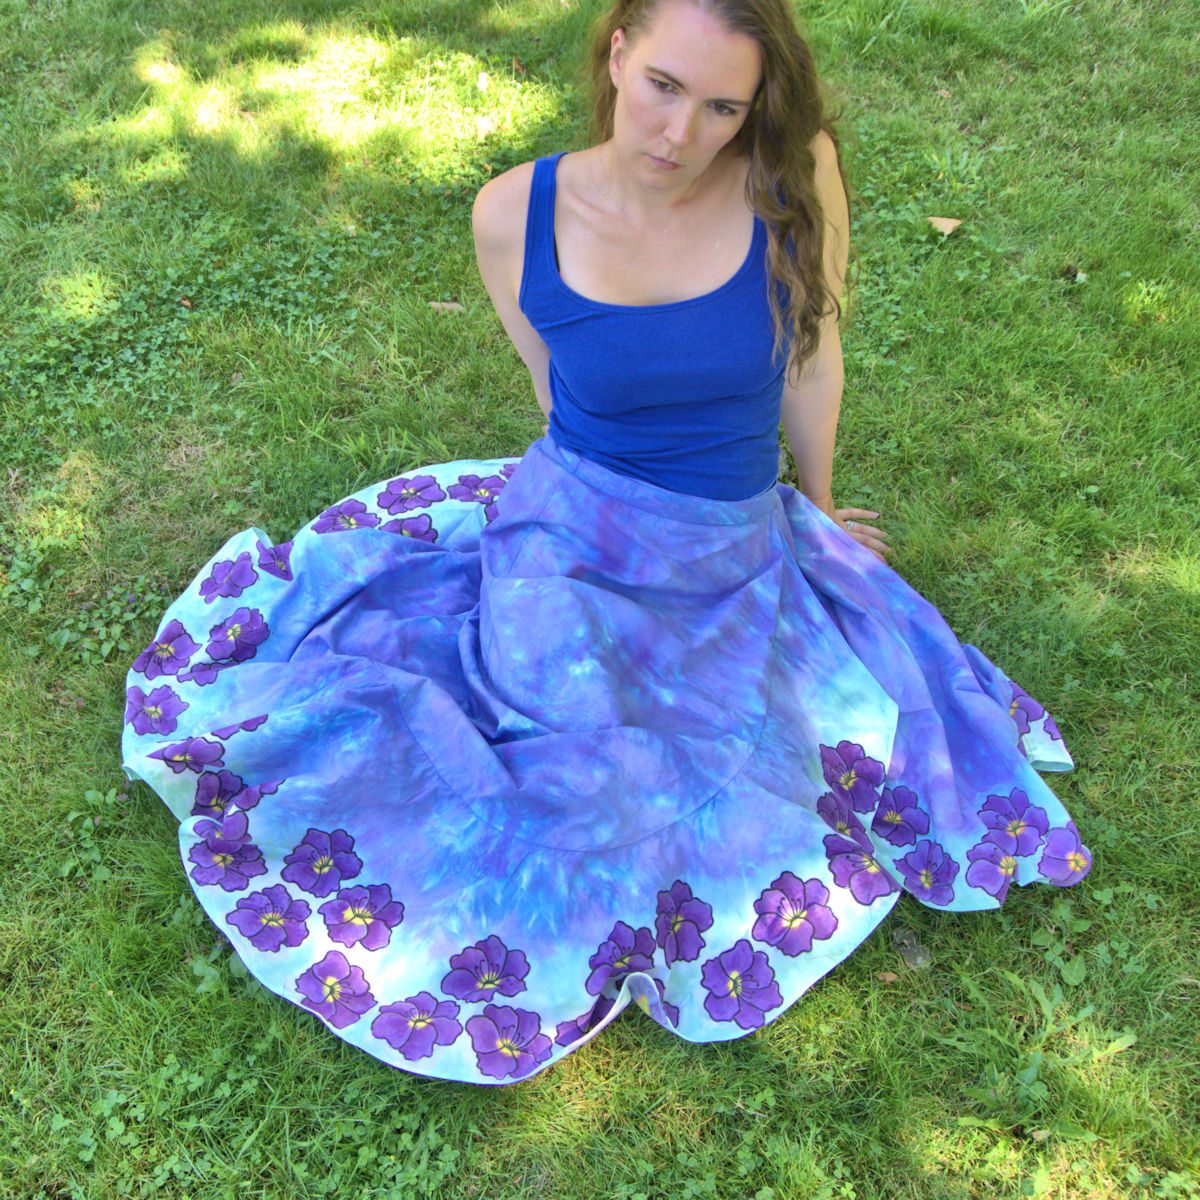 Sitting on ground with purple-blue wrap skirt displaying purple flowers